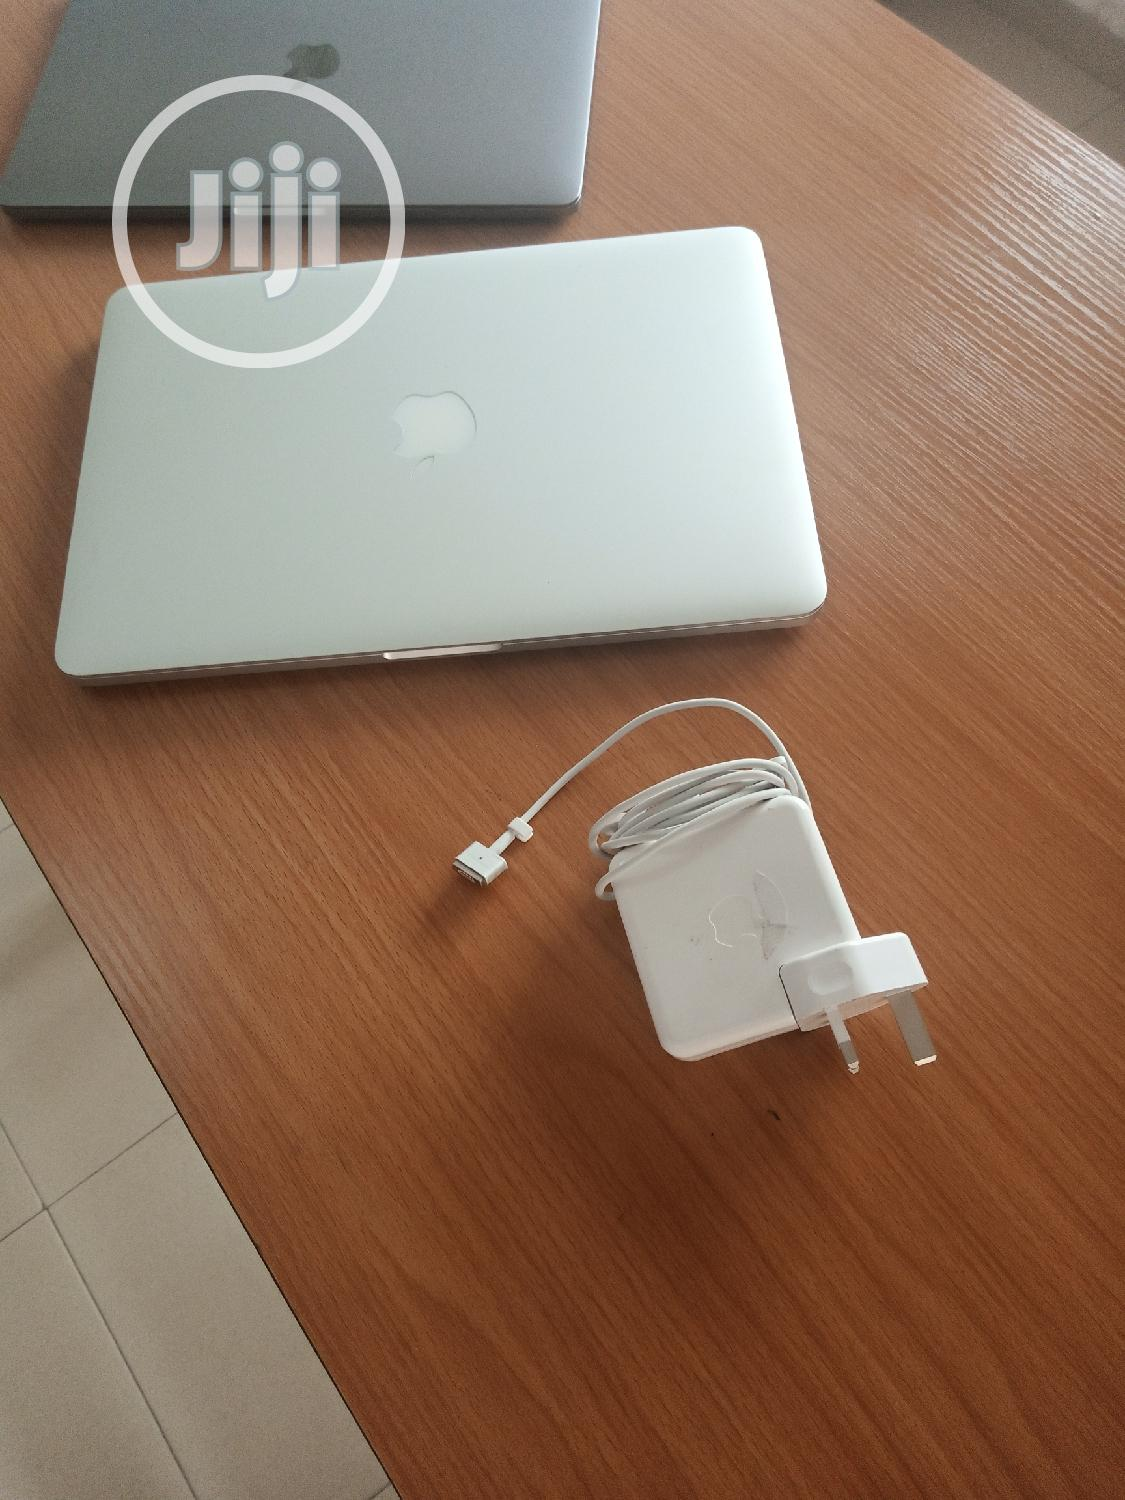 Laptop Apple MacBook Pro 8GB Intel Core i5 SSD 256GB   Laptops & Computers for sale in Awka, Anambra State, Nigeria